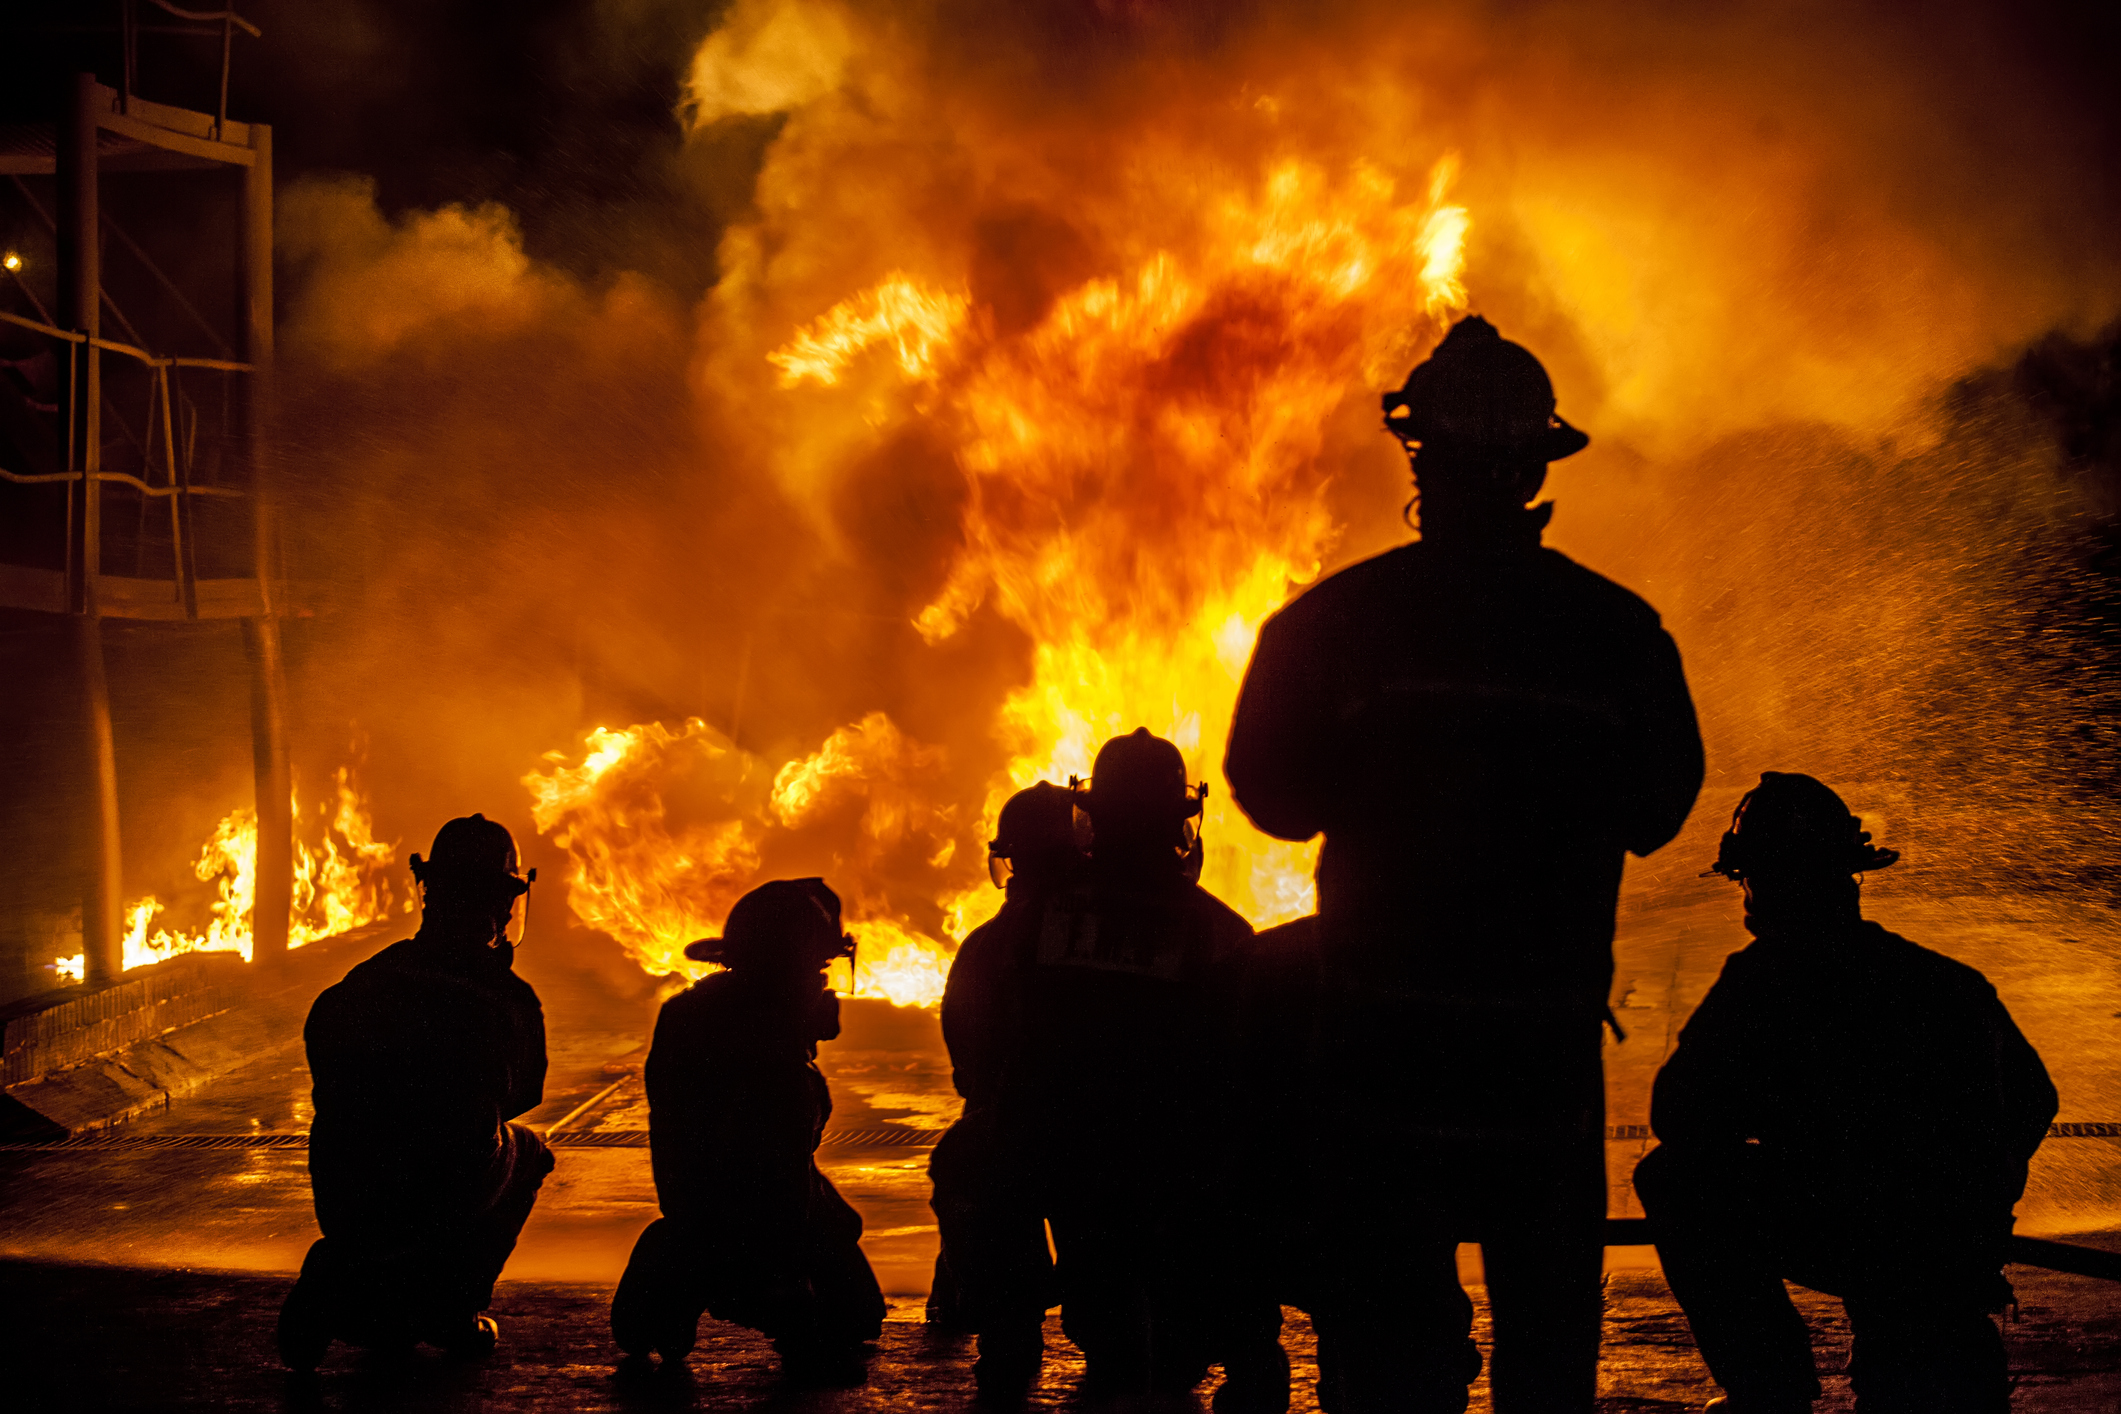 photo of firefighters silhouettes in front of blazing fire at night